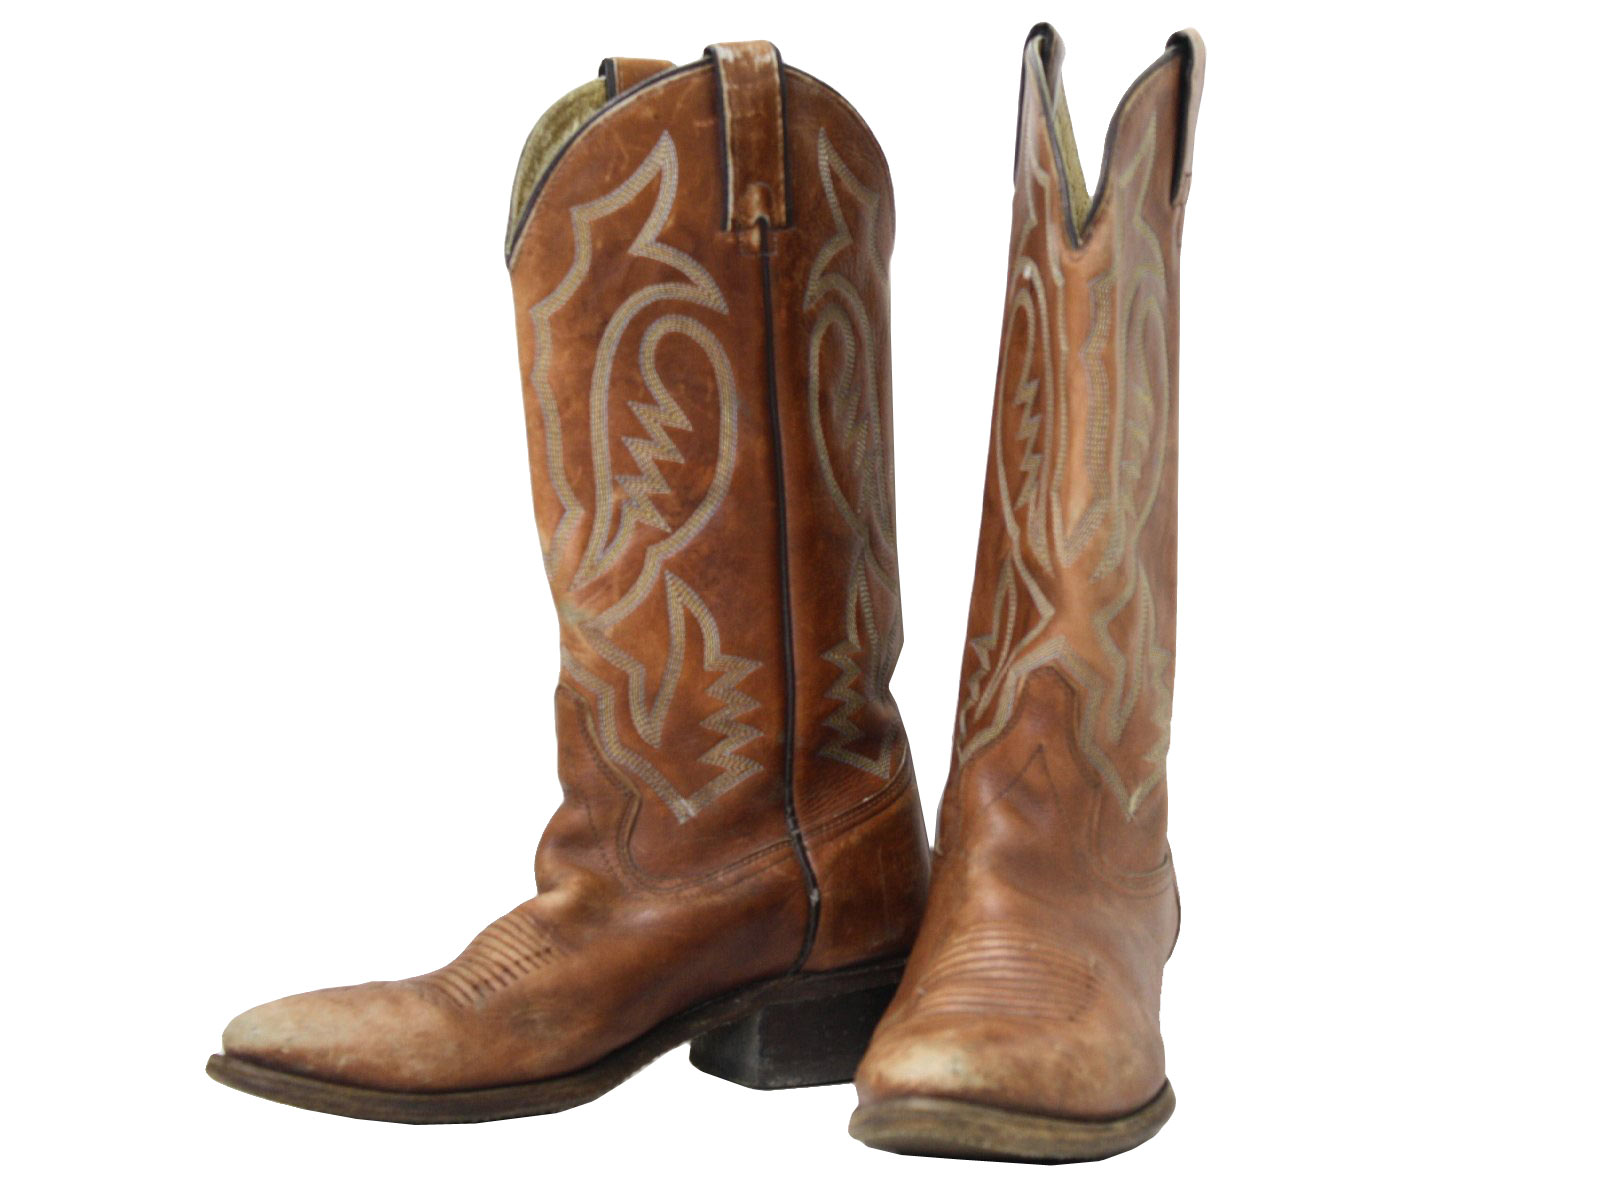 Texas Cowboy Boots WiEHyo5p